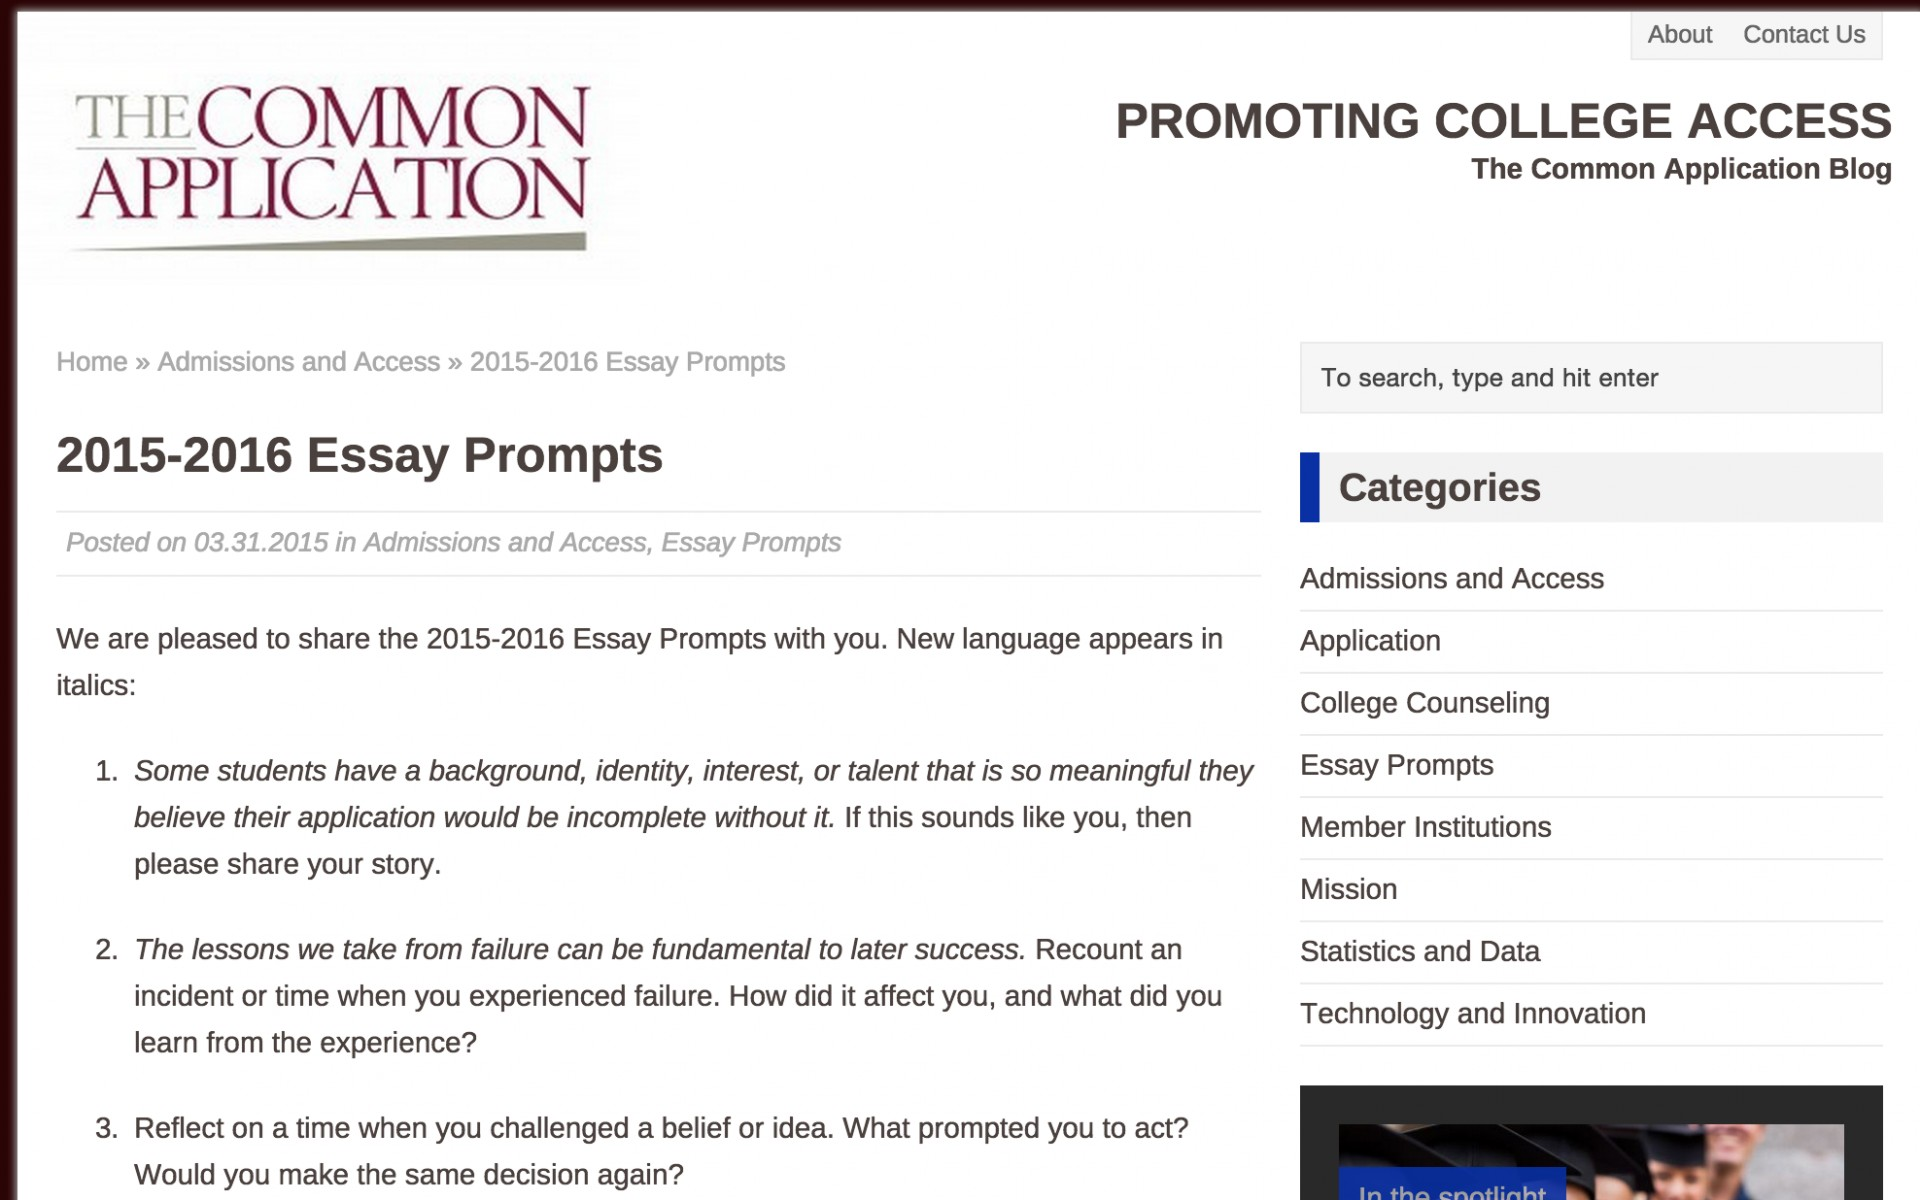 002 Essay Example Screen Shot At Pm Common App Unusual Prompt Examples 4 Prompts Word Limit 1920